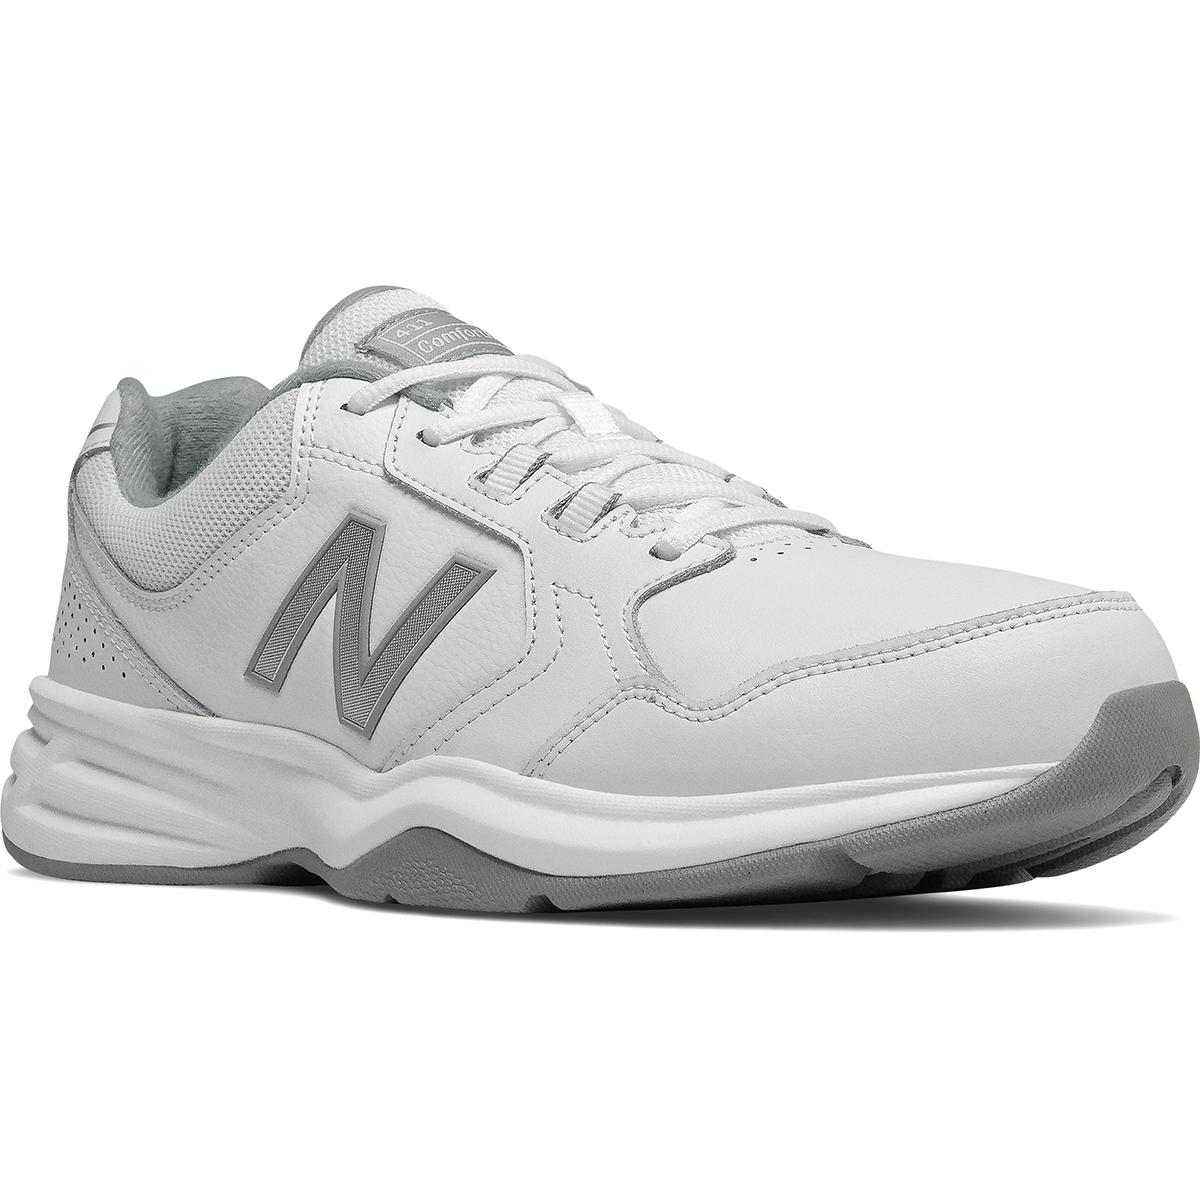 New Balance Men's 411 Walking Shoes, Wide - White, 13